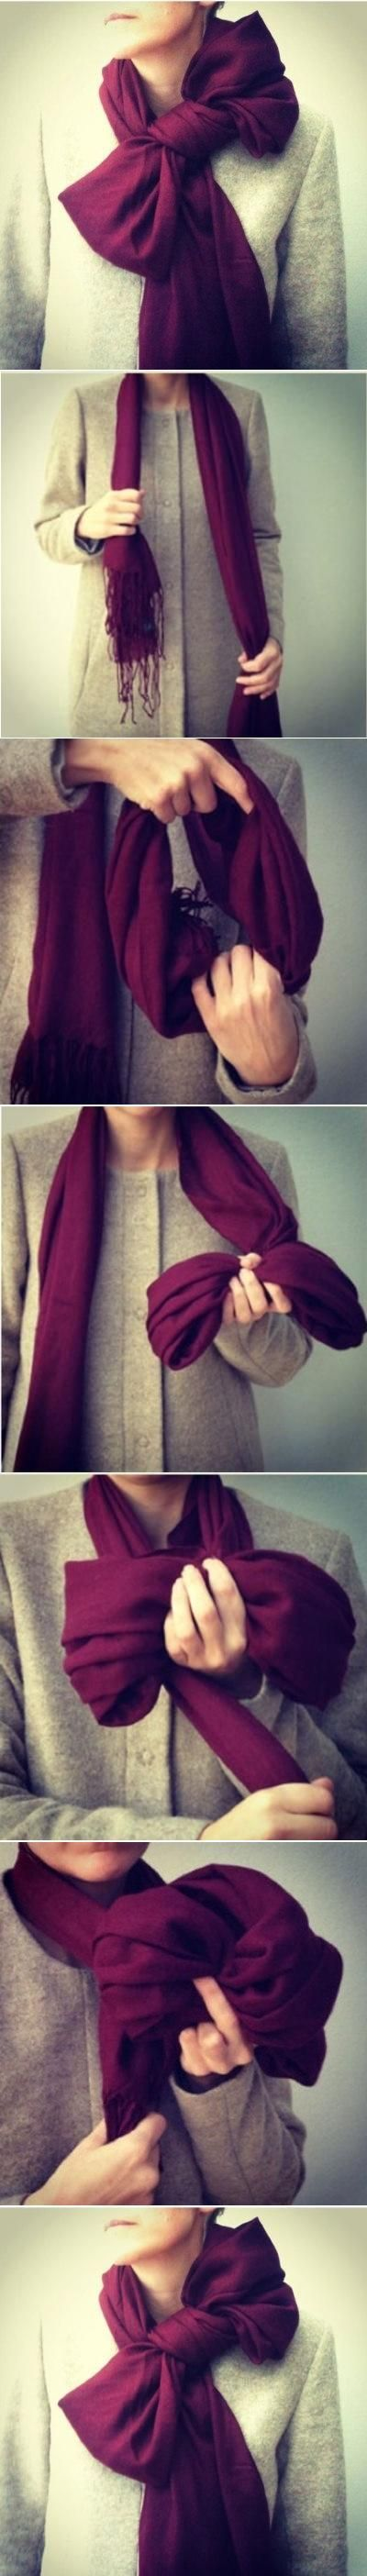 DIY Scarf Bow